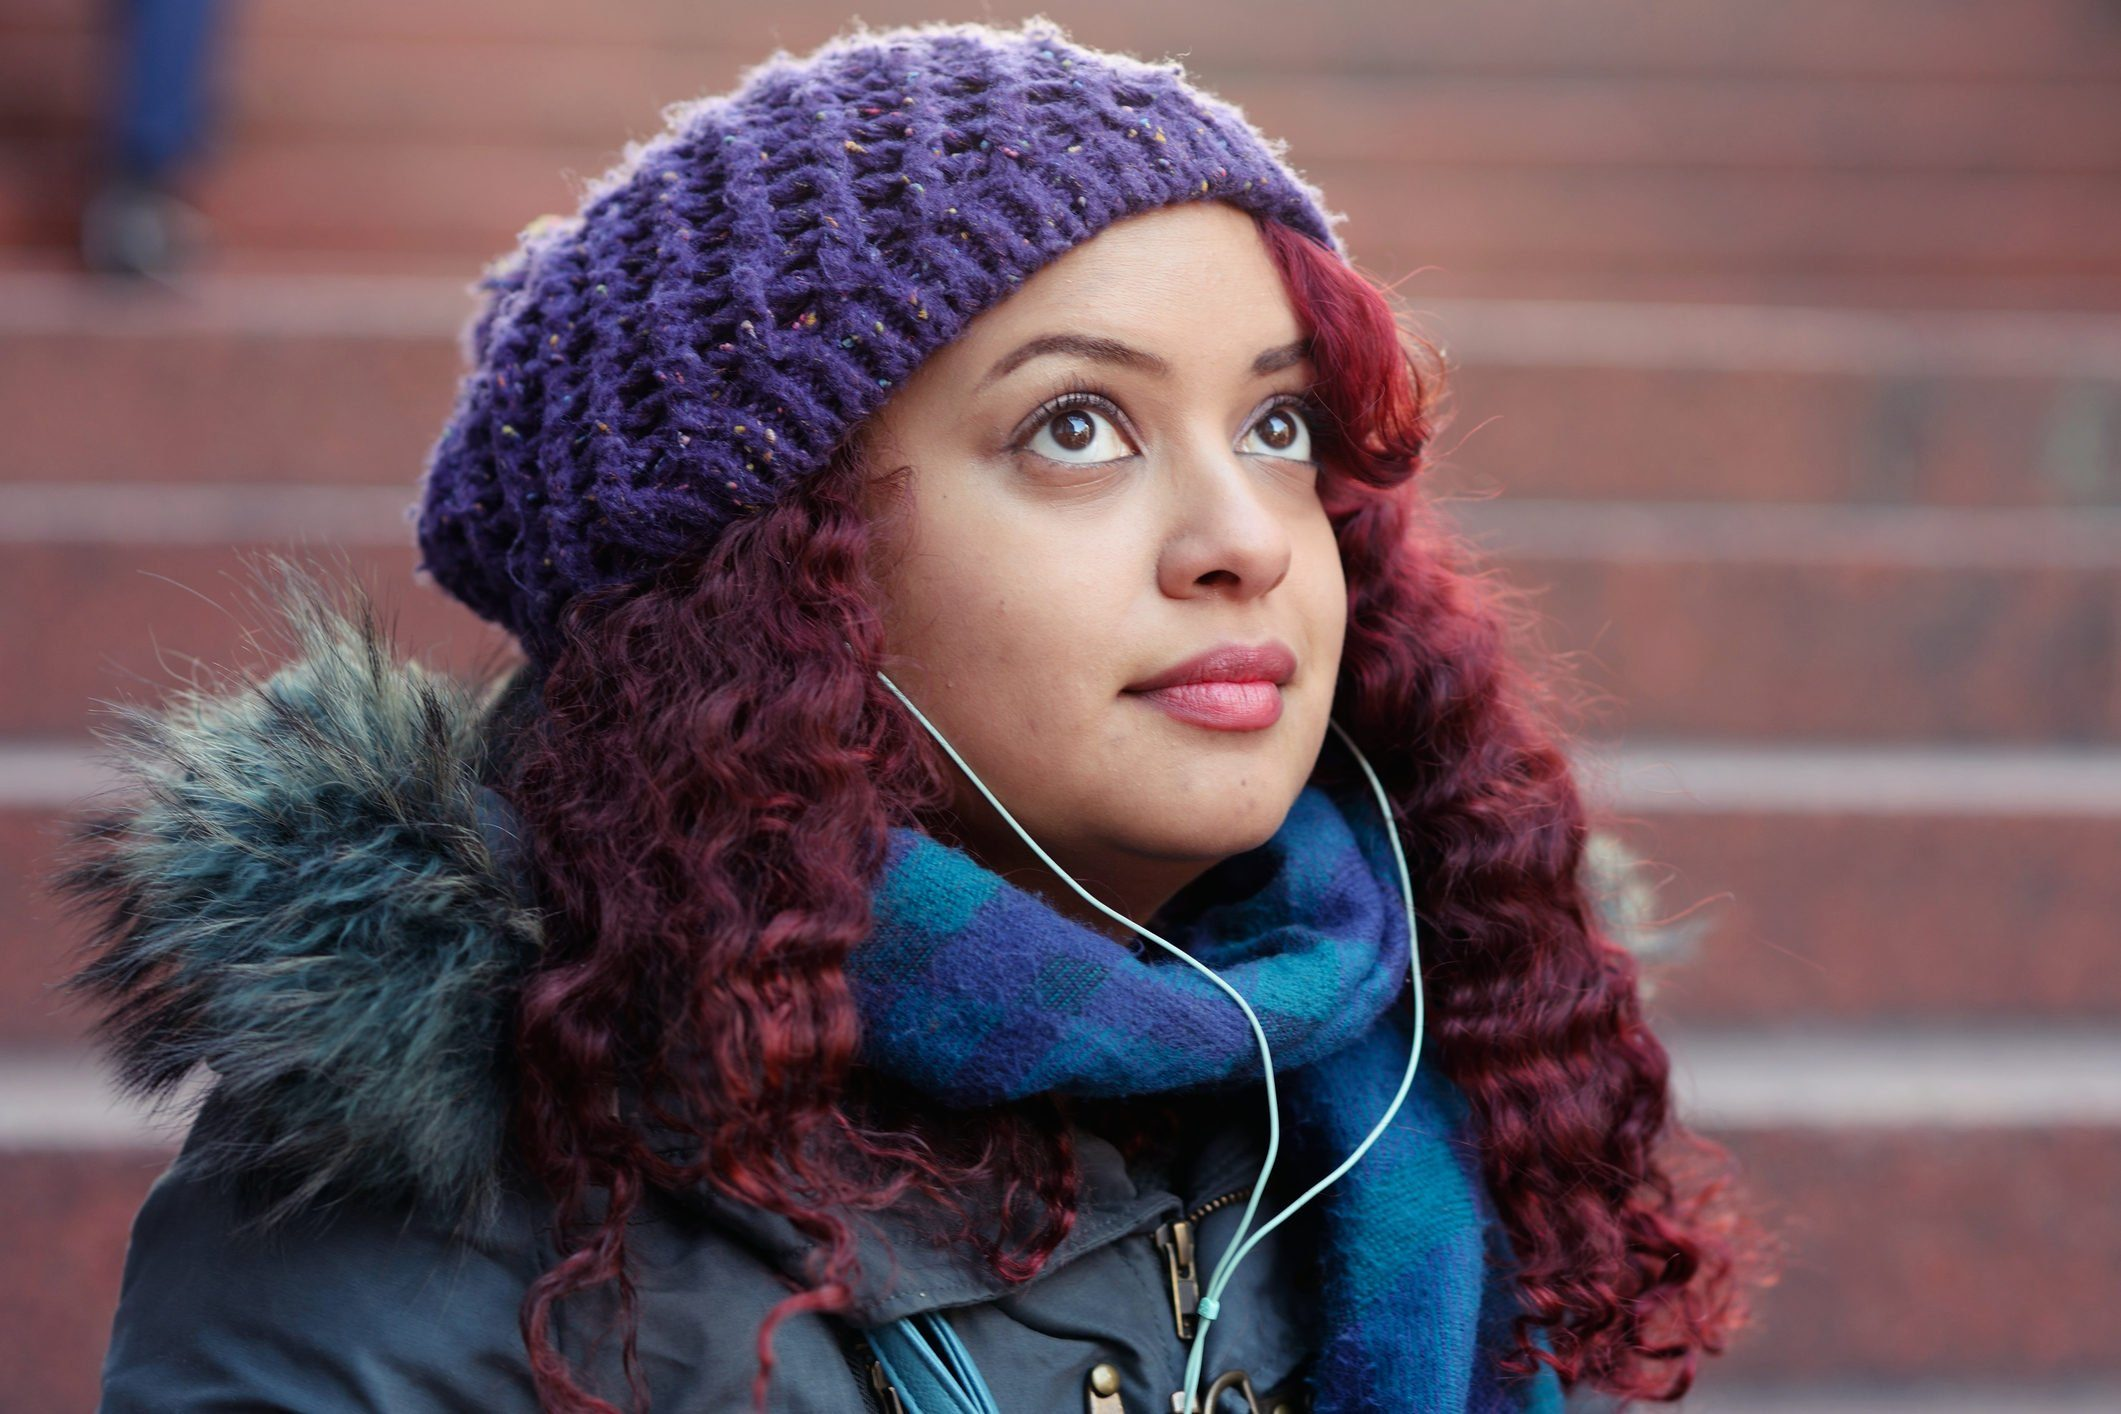 Young woman listening to music